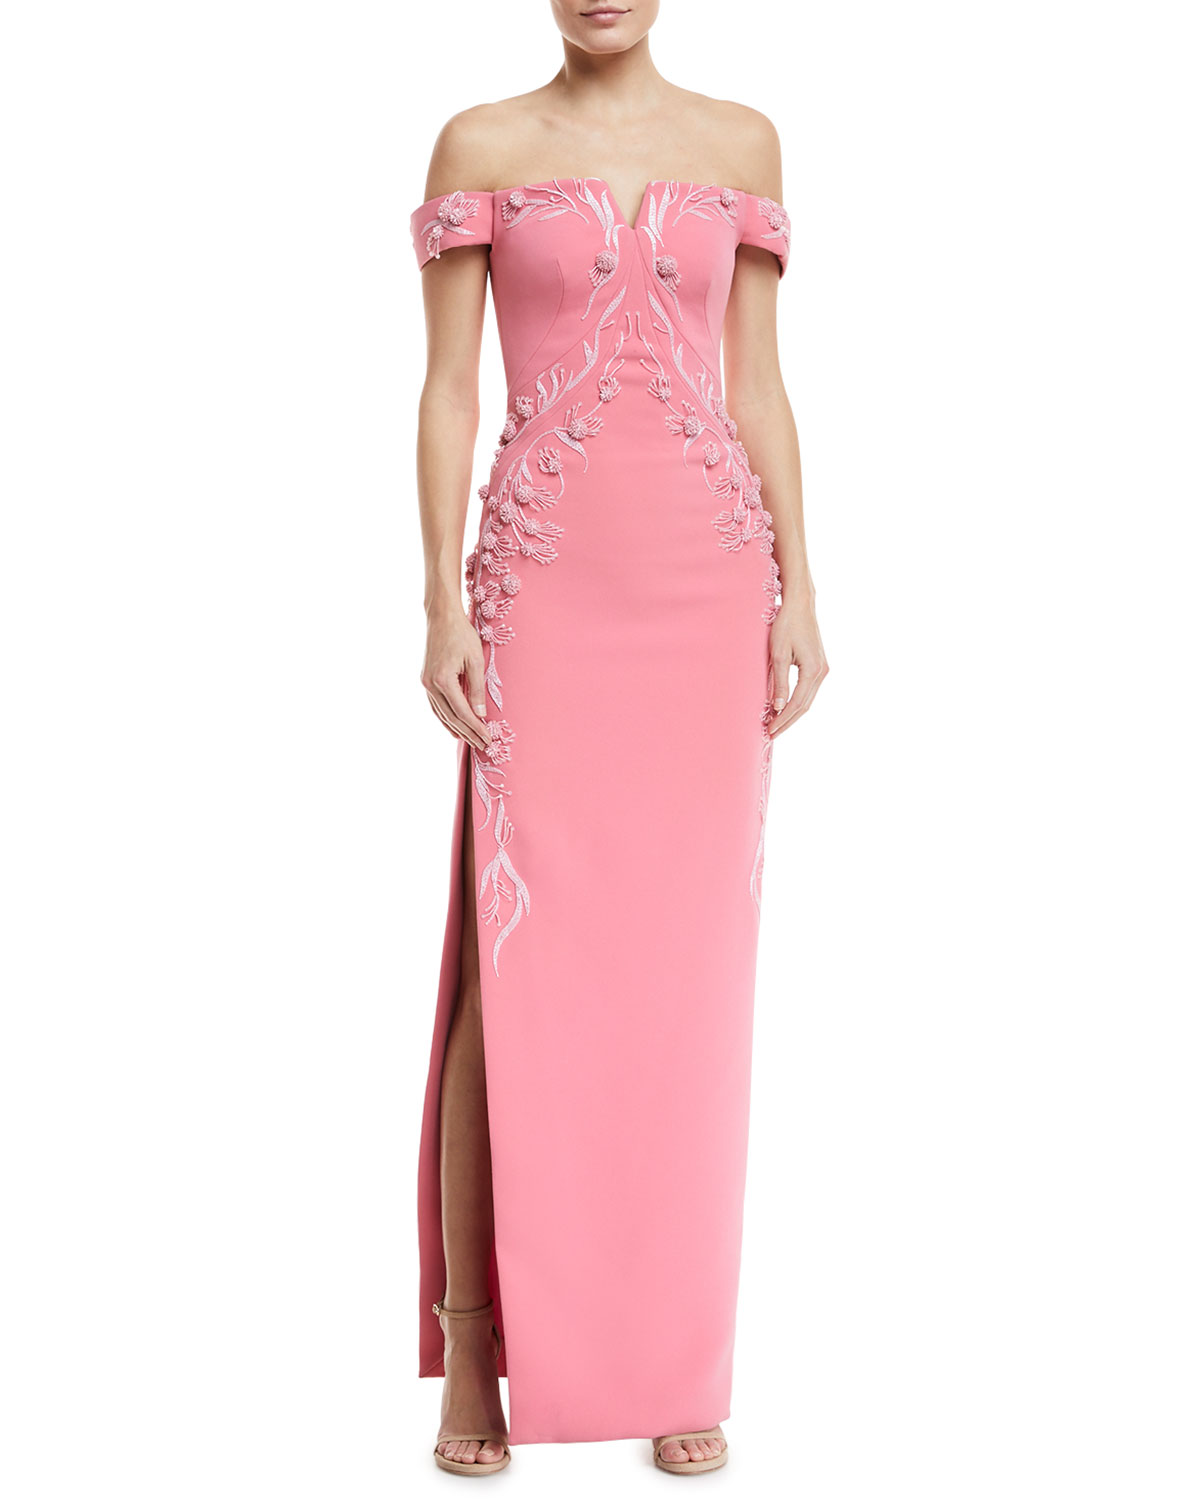 5b59848a30d4 Zac PosenOff-the-Shoulder Bonded Crepe Evening Gown w  Floral Embroidery